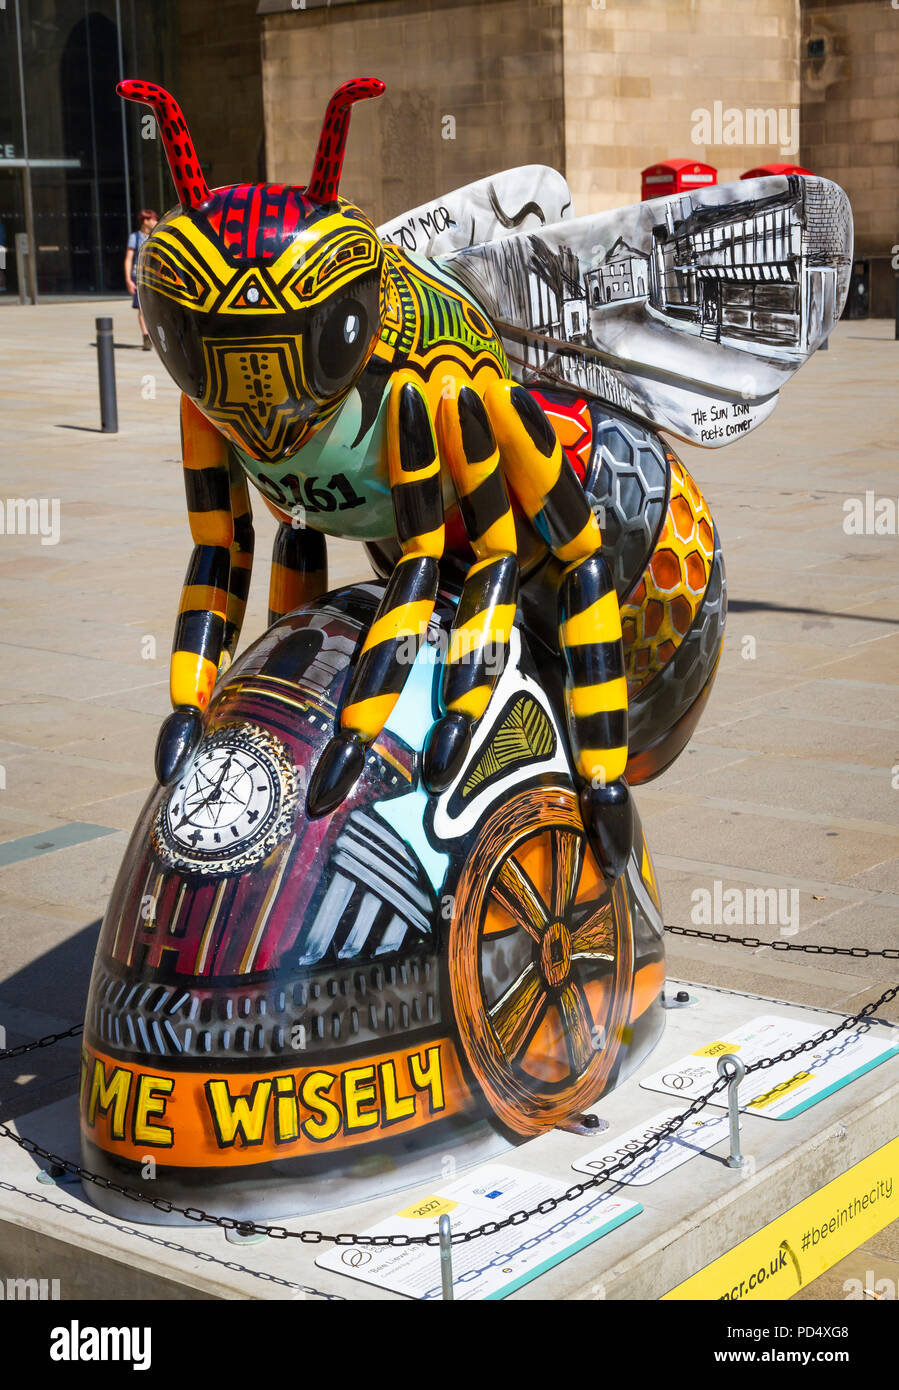 Bee Lieve in Manchester - kELzO. Bee in the City, public art event in the City of Manchester. Over 100 bees on a free family fun trail. - Stock Image